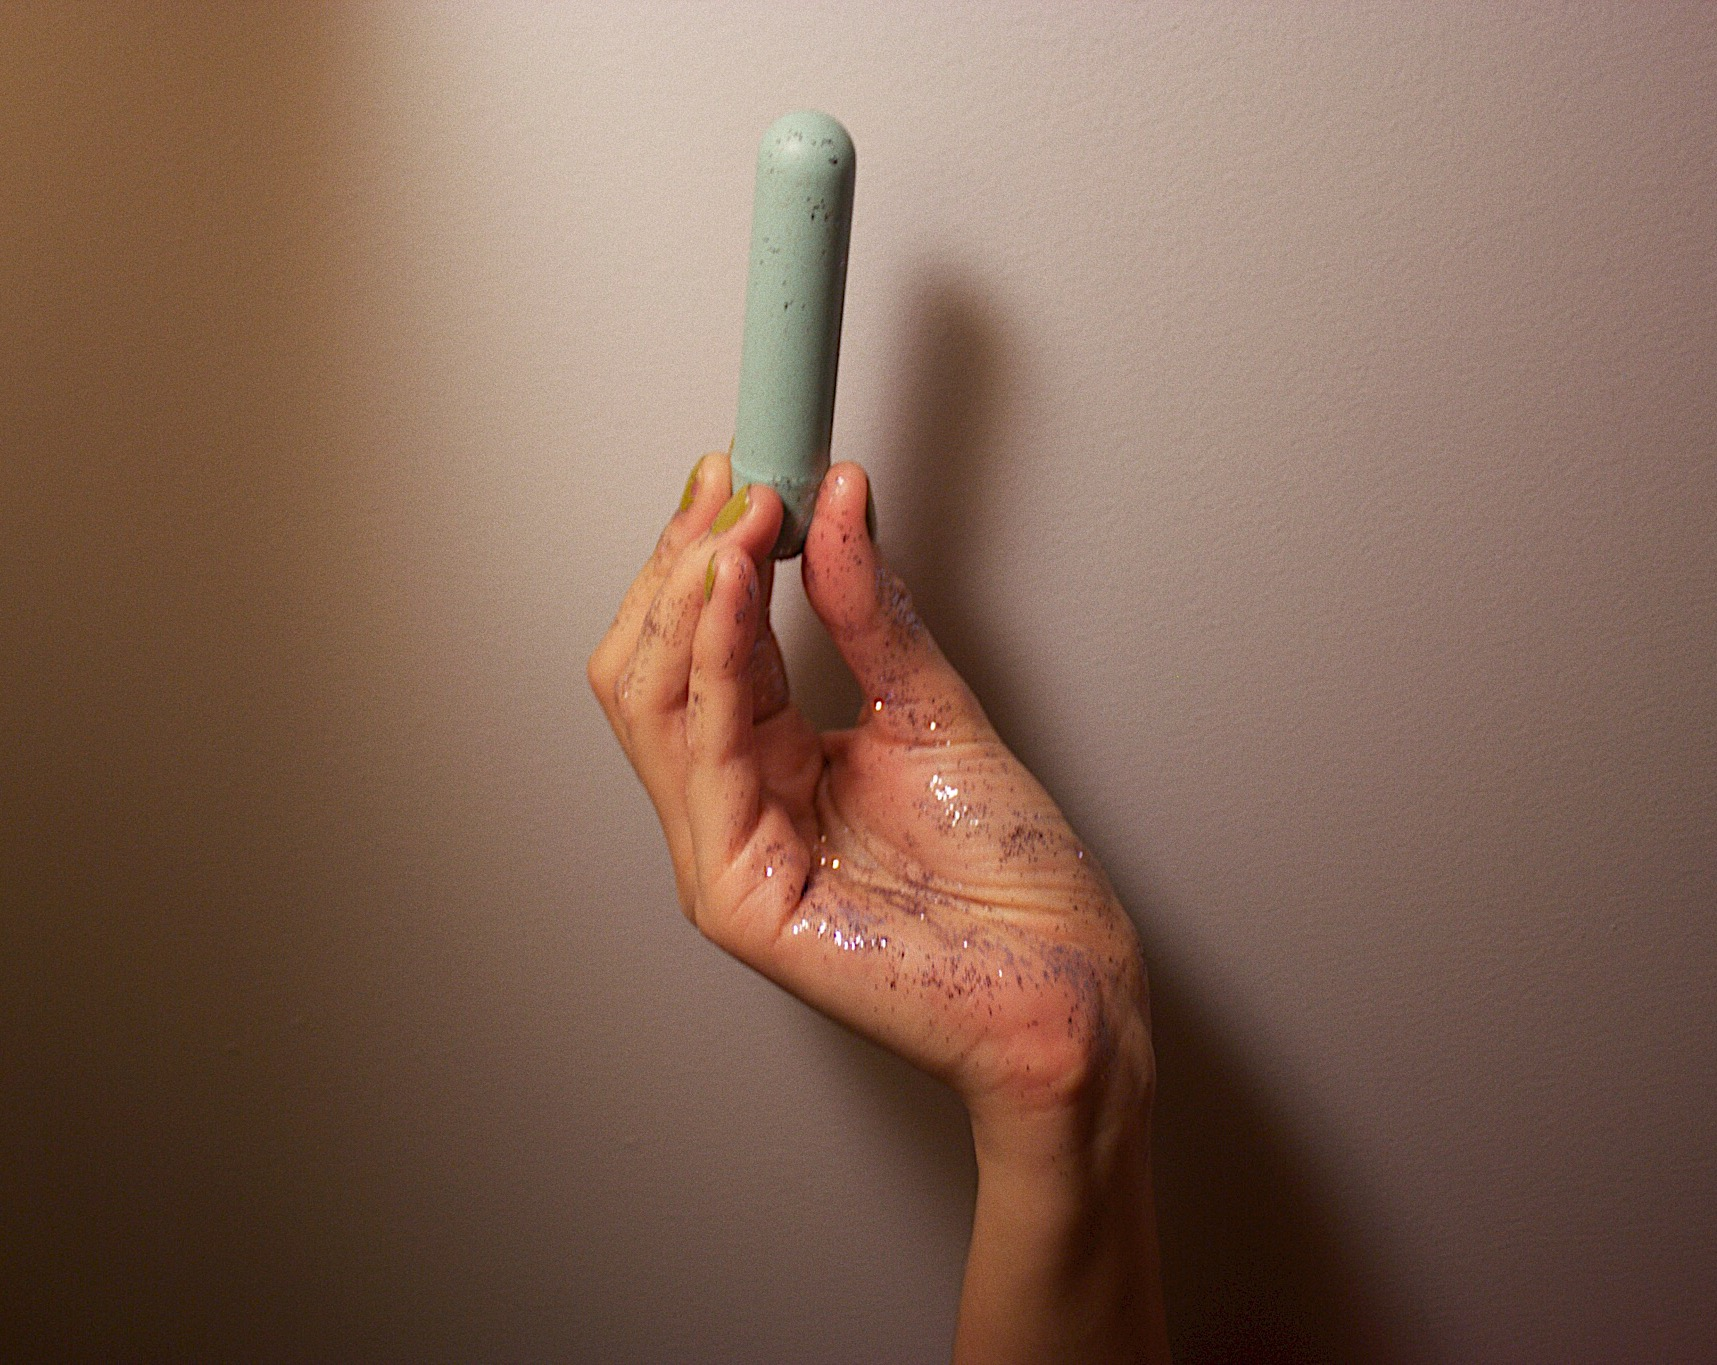 Eco-bullet vibrator from  Package Free Shop . Photographed by  Sam Baselice